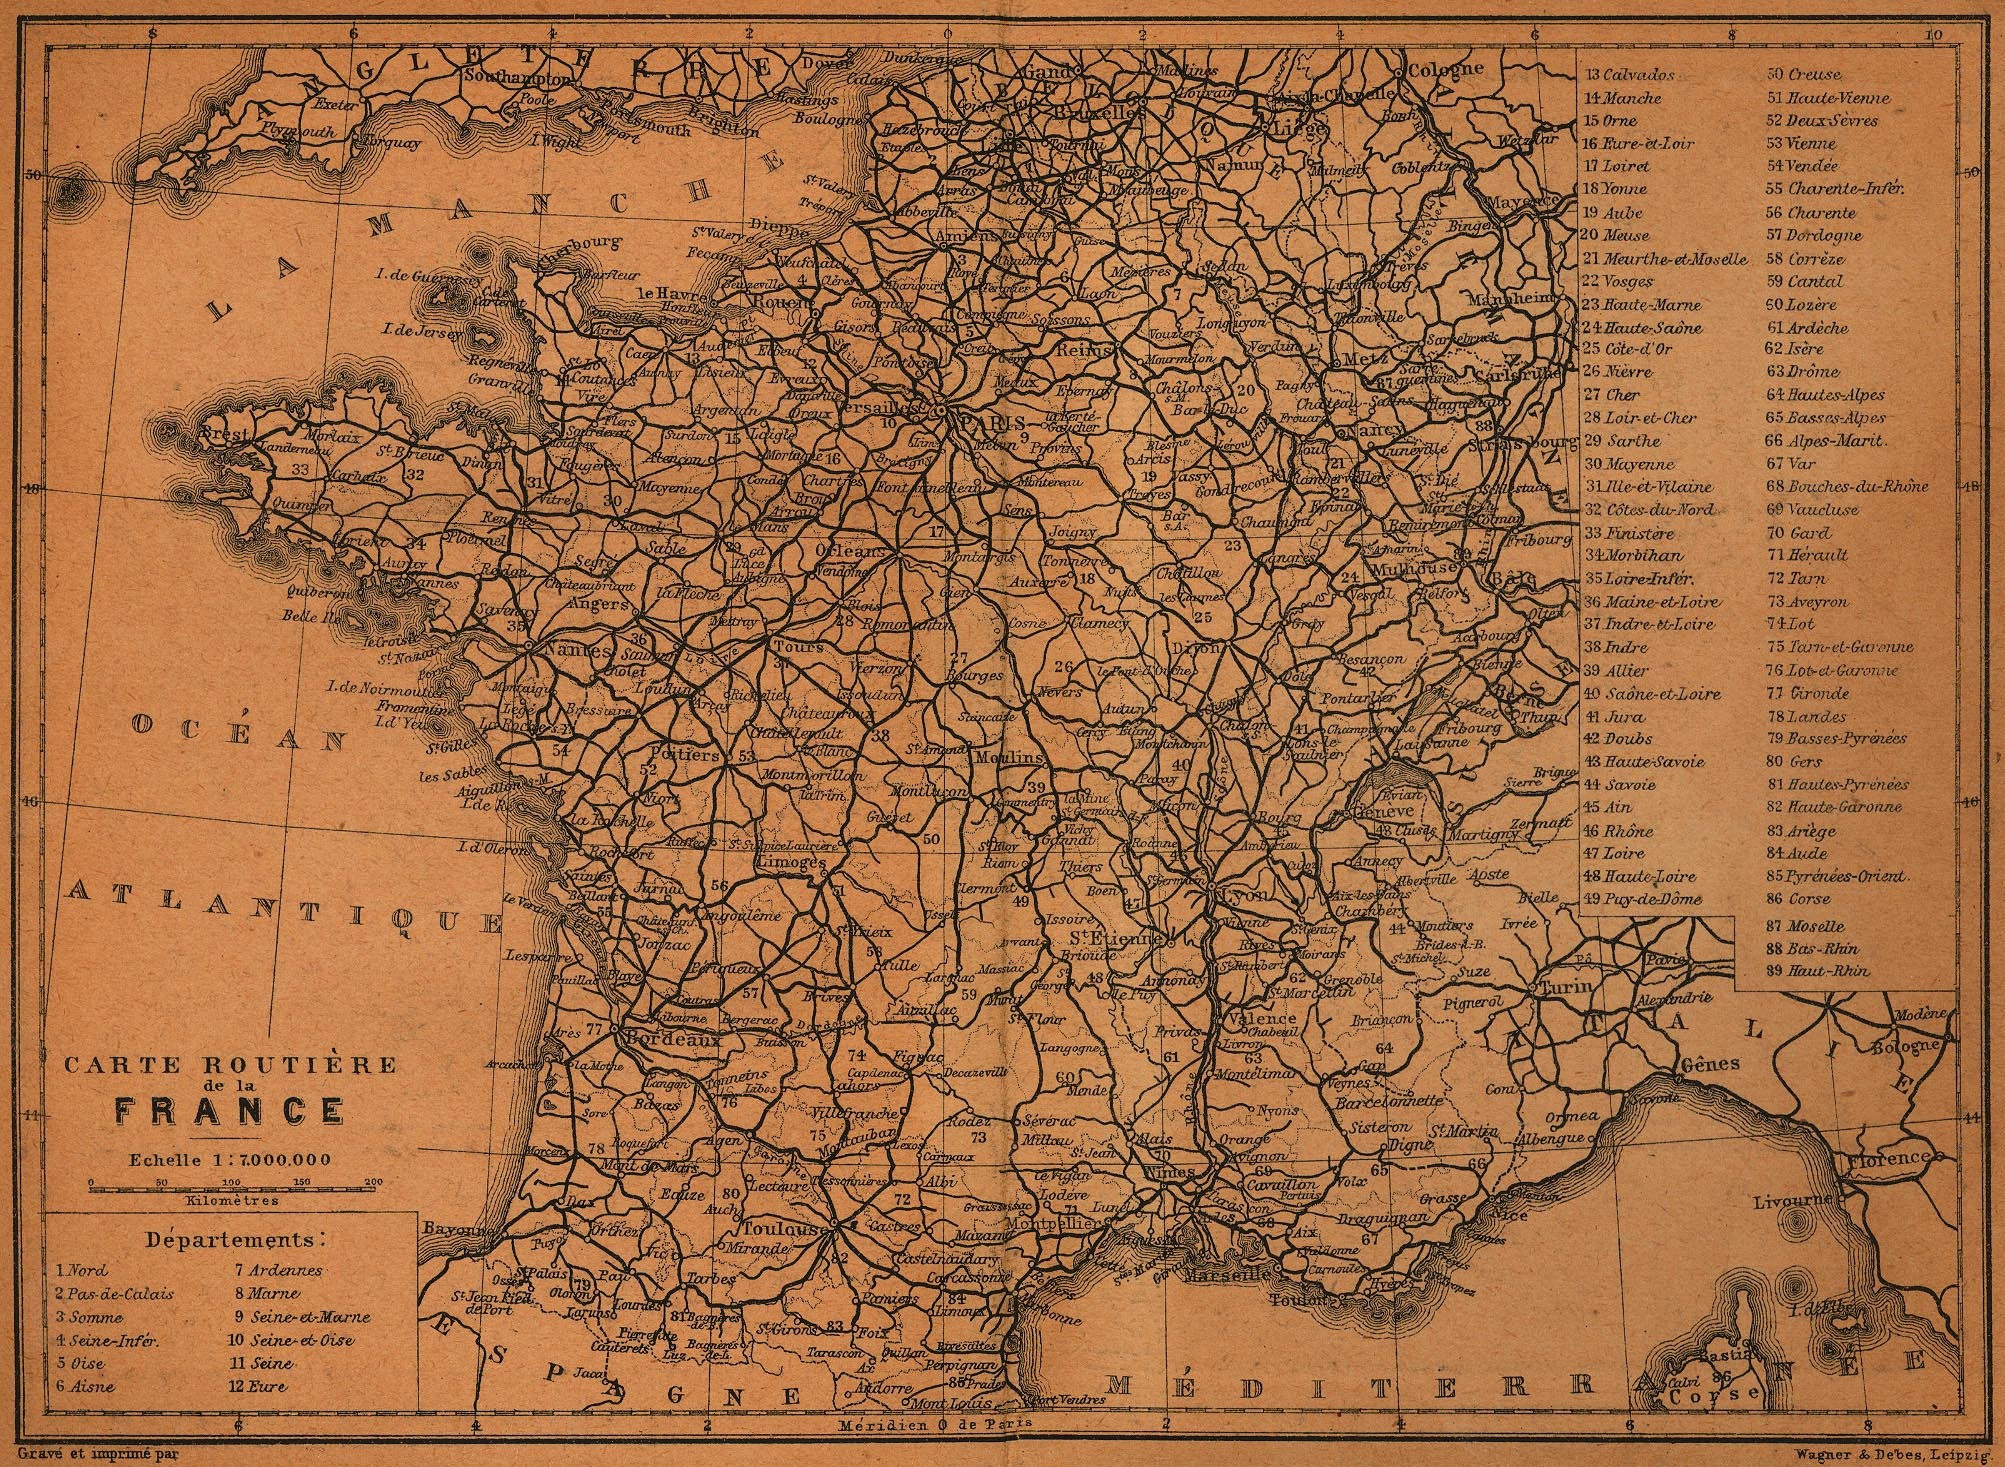 France Road Map 1914 - France • mappery on explorers map, dish network map, cmc map, coverage map, helsingborg map, the narrows map, wal mart map, ultima 3 map, manitou map, rmh map, jvc map, john deere map, vanguard airlines route map, marshall map, all quiet on the western front map, harley davidson map, bucket list map, usc housing map, loran map, zoom map,